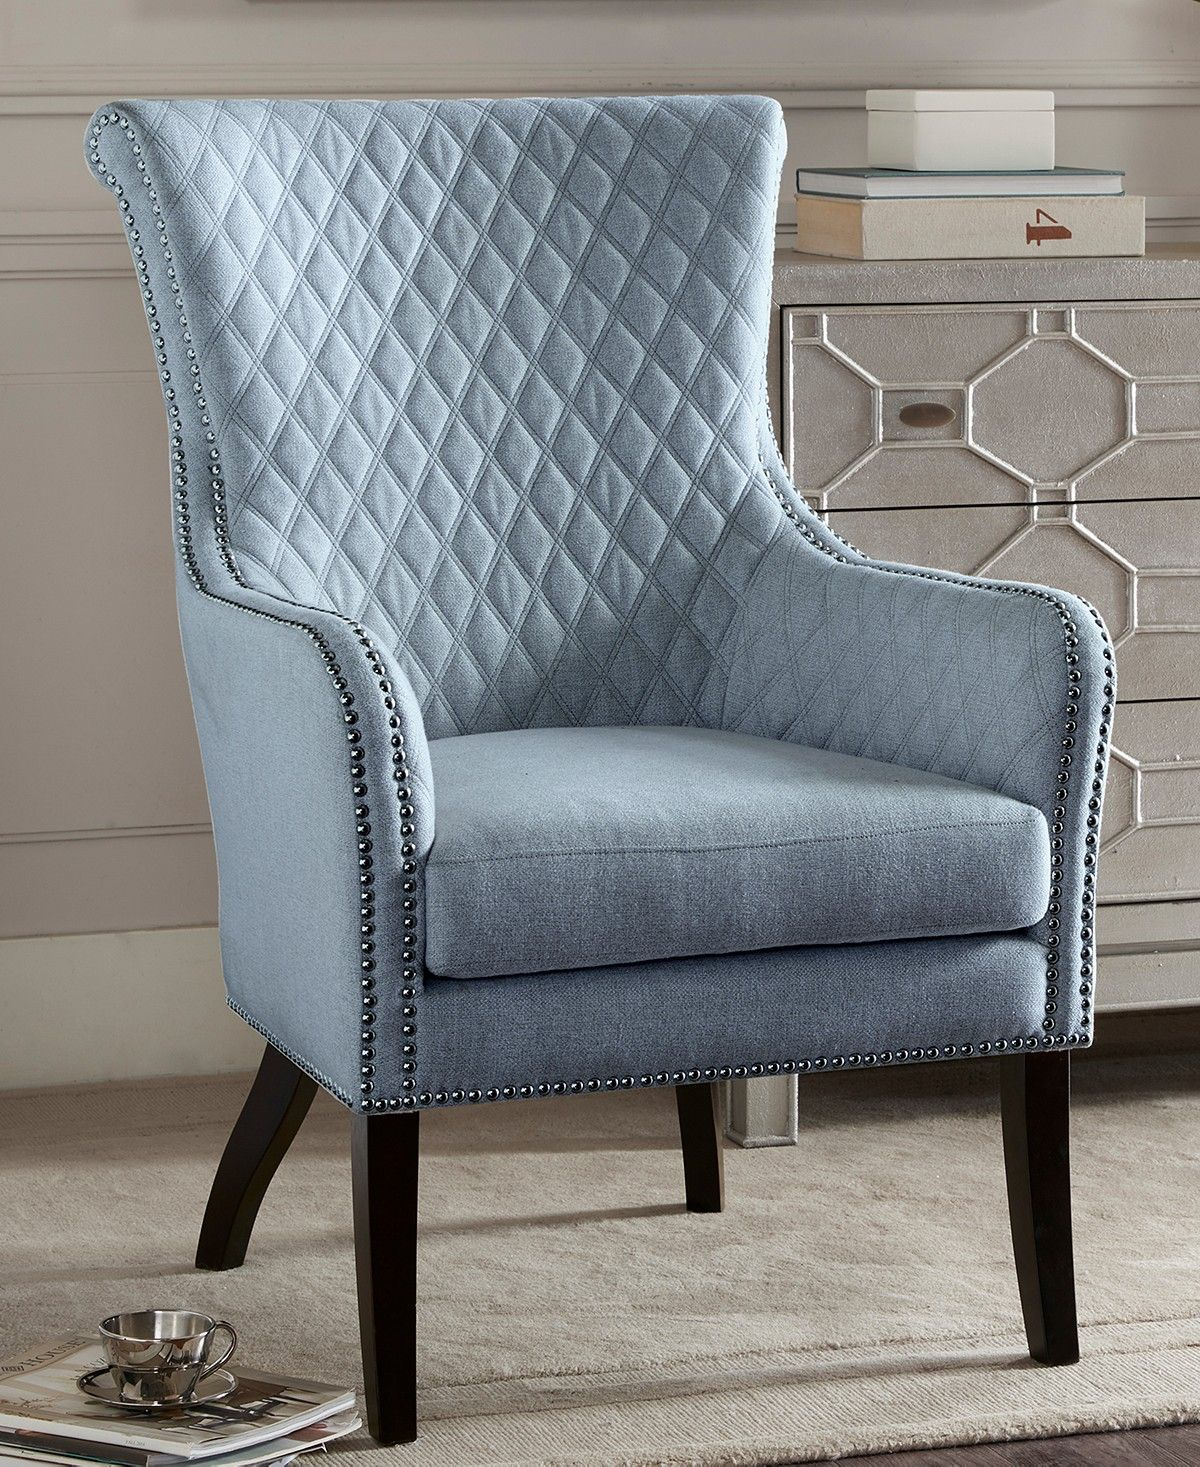 Heston Accent Chair Quick Ship Chairs Recliners Furniture